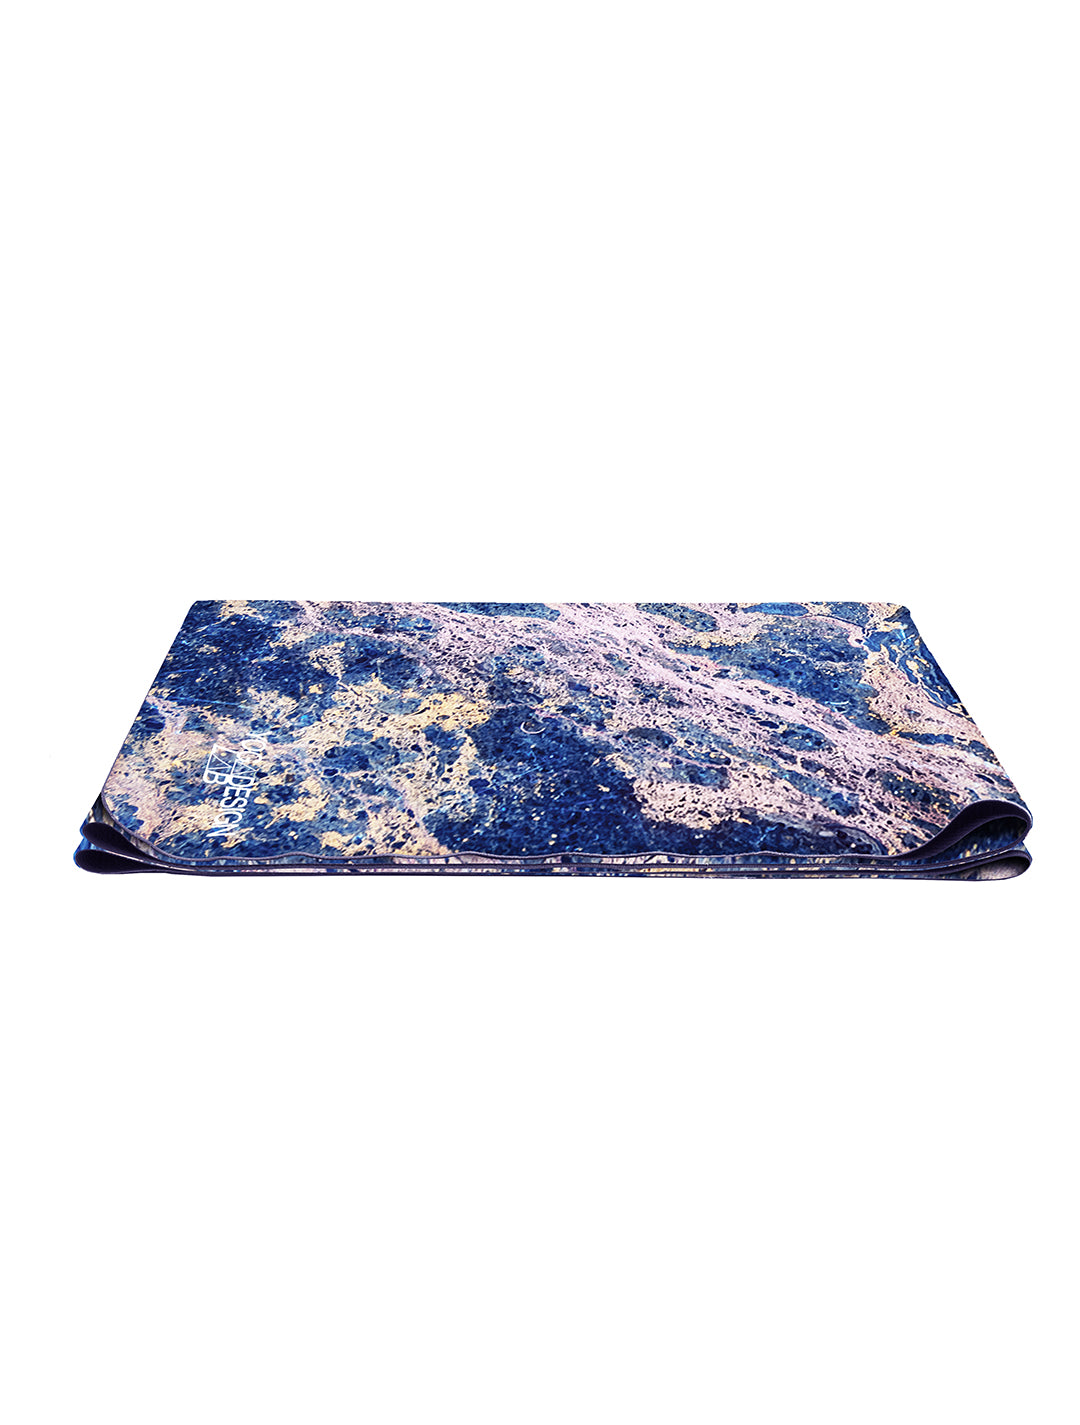 Origins Travel Yoga Mat by Yoga Design Lab - Psylo Fashion